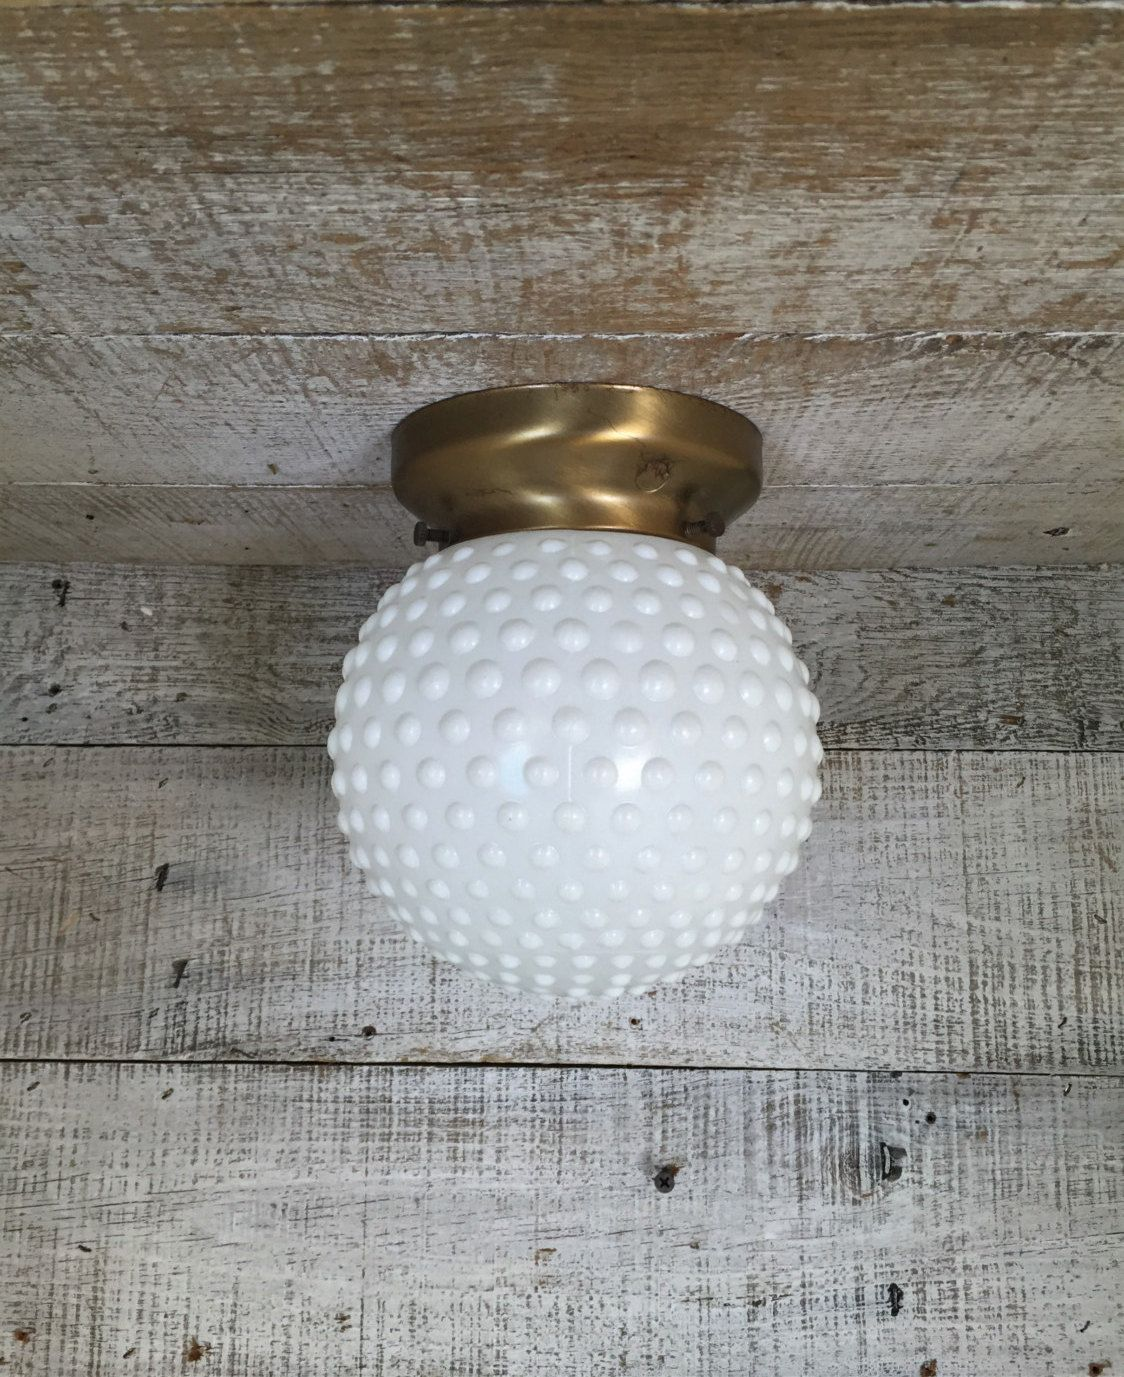 Ceiling light fixture hobnail milk glass ceiling light art nouveau ceiling light fixture hobnail milk glass ceiling light art nouveau ceiling light fixture flush mount ceiling mozeypictures Image collections